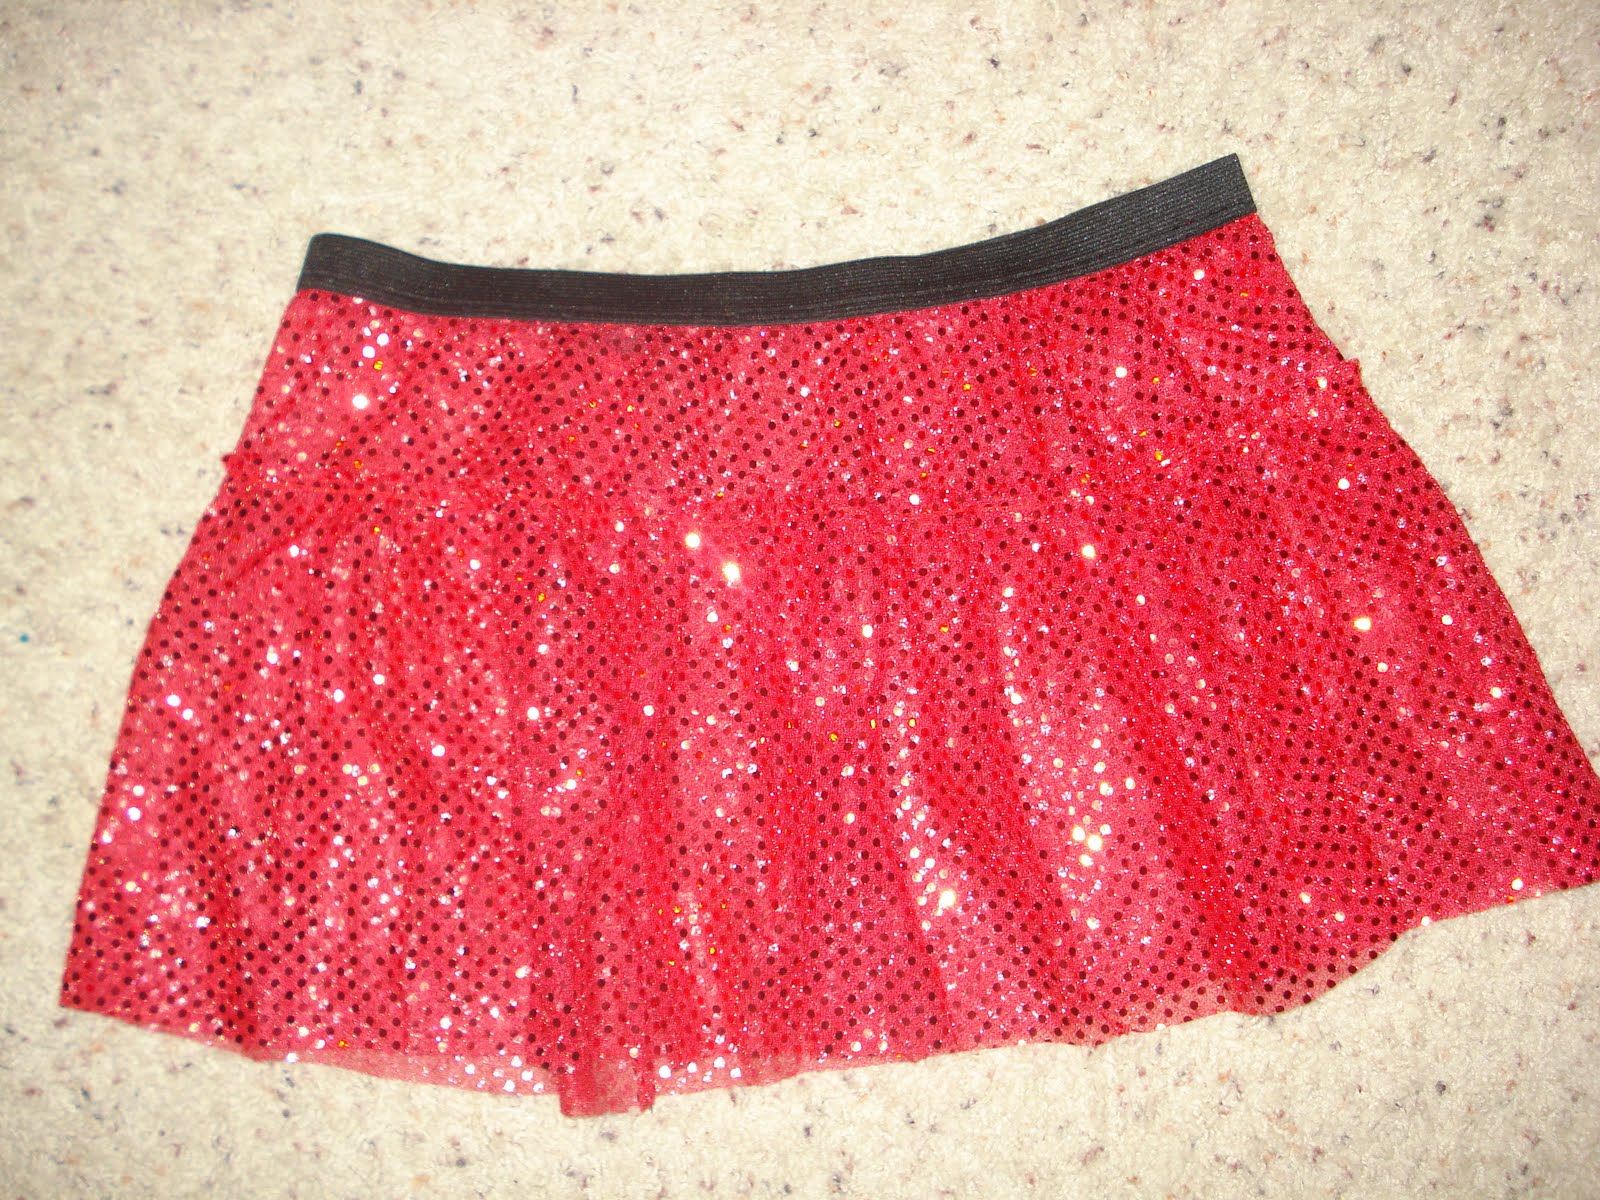 Related: sparkle skirt running sequin skirt sparkle skirts sparkleskirt running skirt sparkleskirts inknburn running tutu sparkle athletic sparkle skirt xl. Include description. Categories. All. Save sparkle skirt to get e-mail alerts and updates on your eBay Feed. + SPONSORED. Women's Swing Style Sparkle Running Skirt Peacock Burgandy.